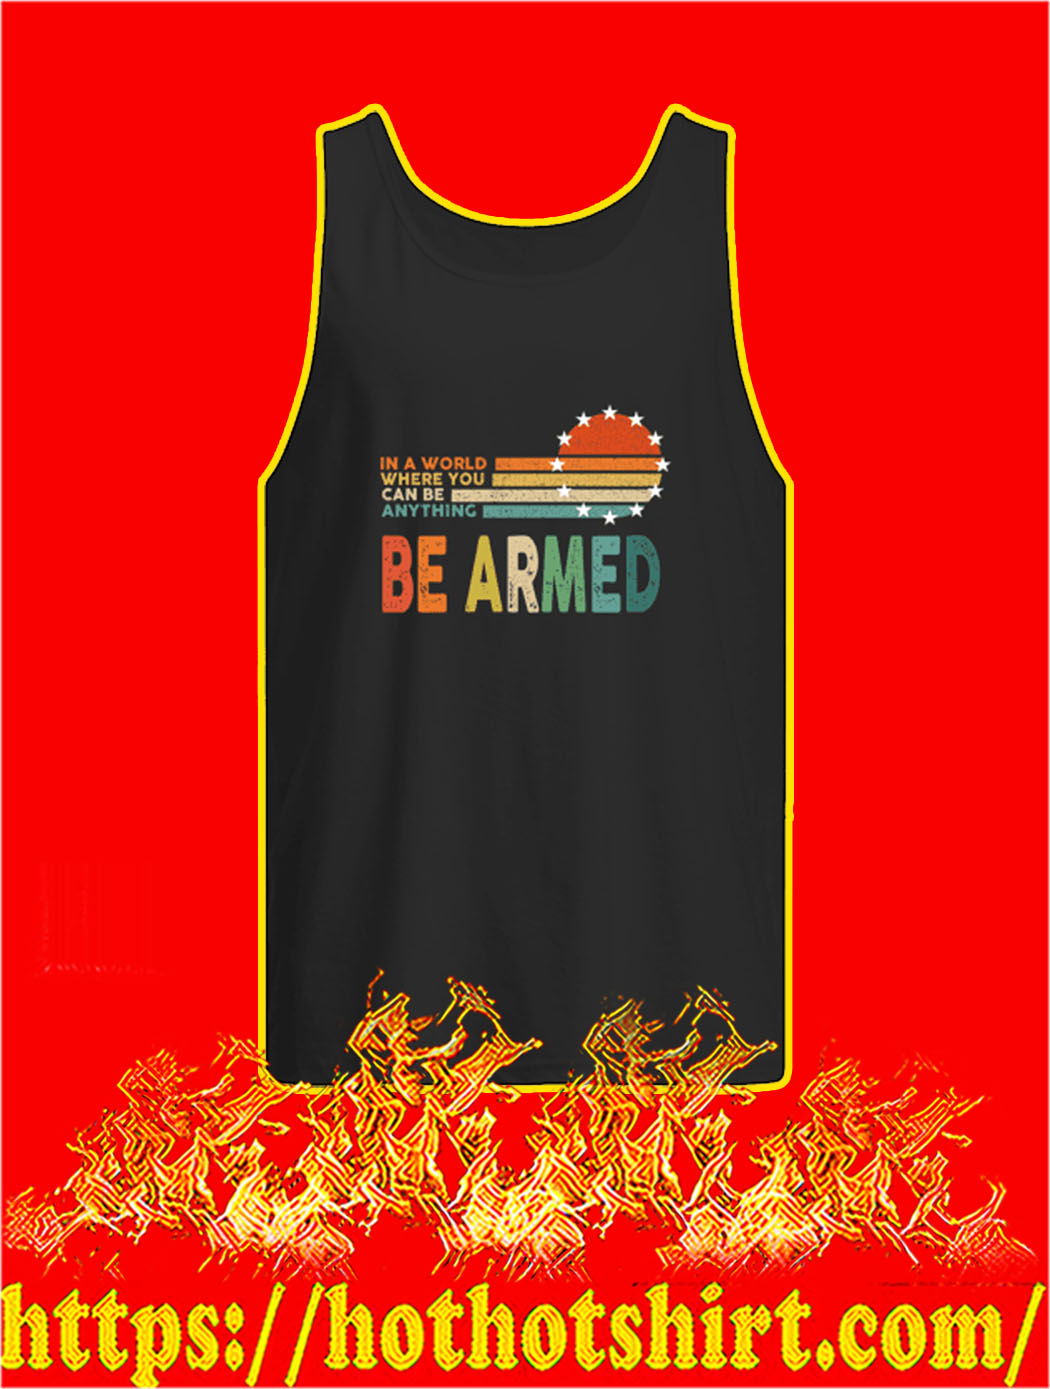 In A World Where You Can Be Anything Be Armed tank top